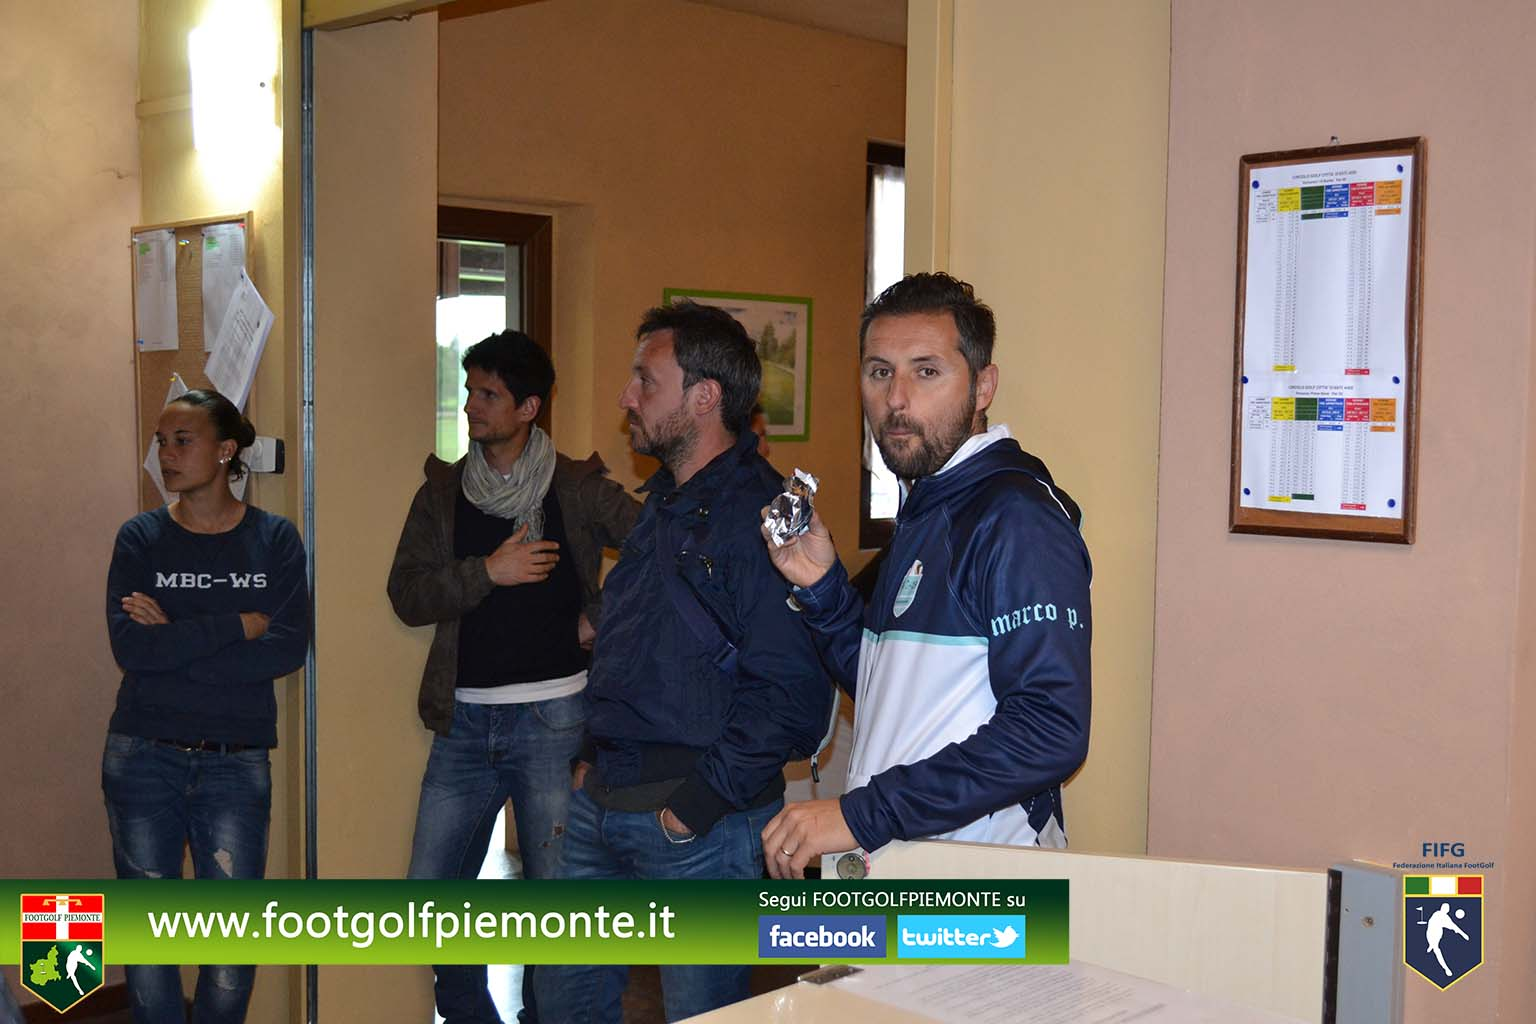 FOTO 9 Regions' Cup Footgolf Piemonte 2016 Golf Città di Asti (At) 30apr16-102